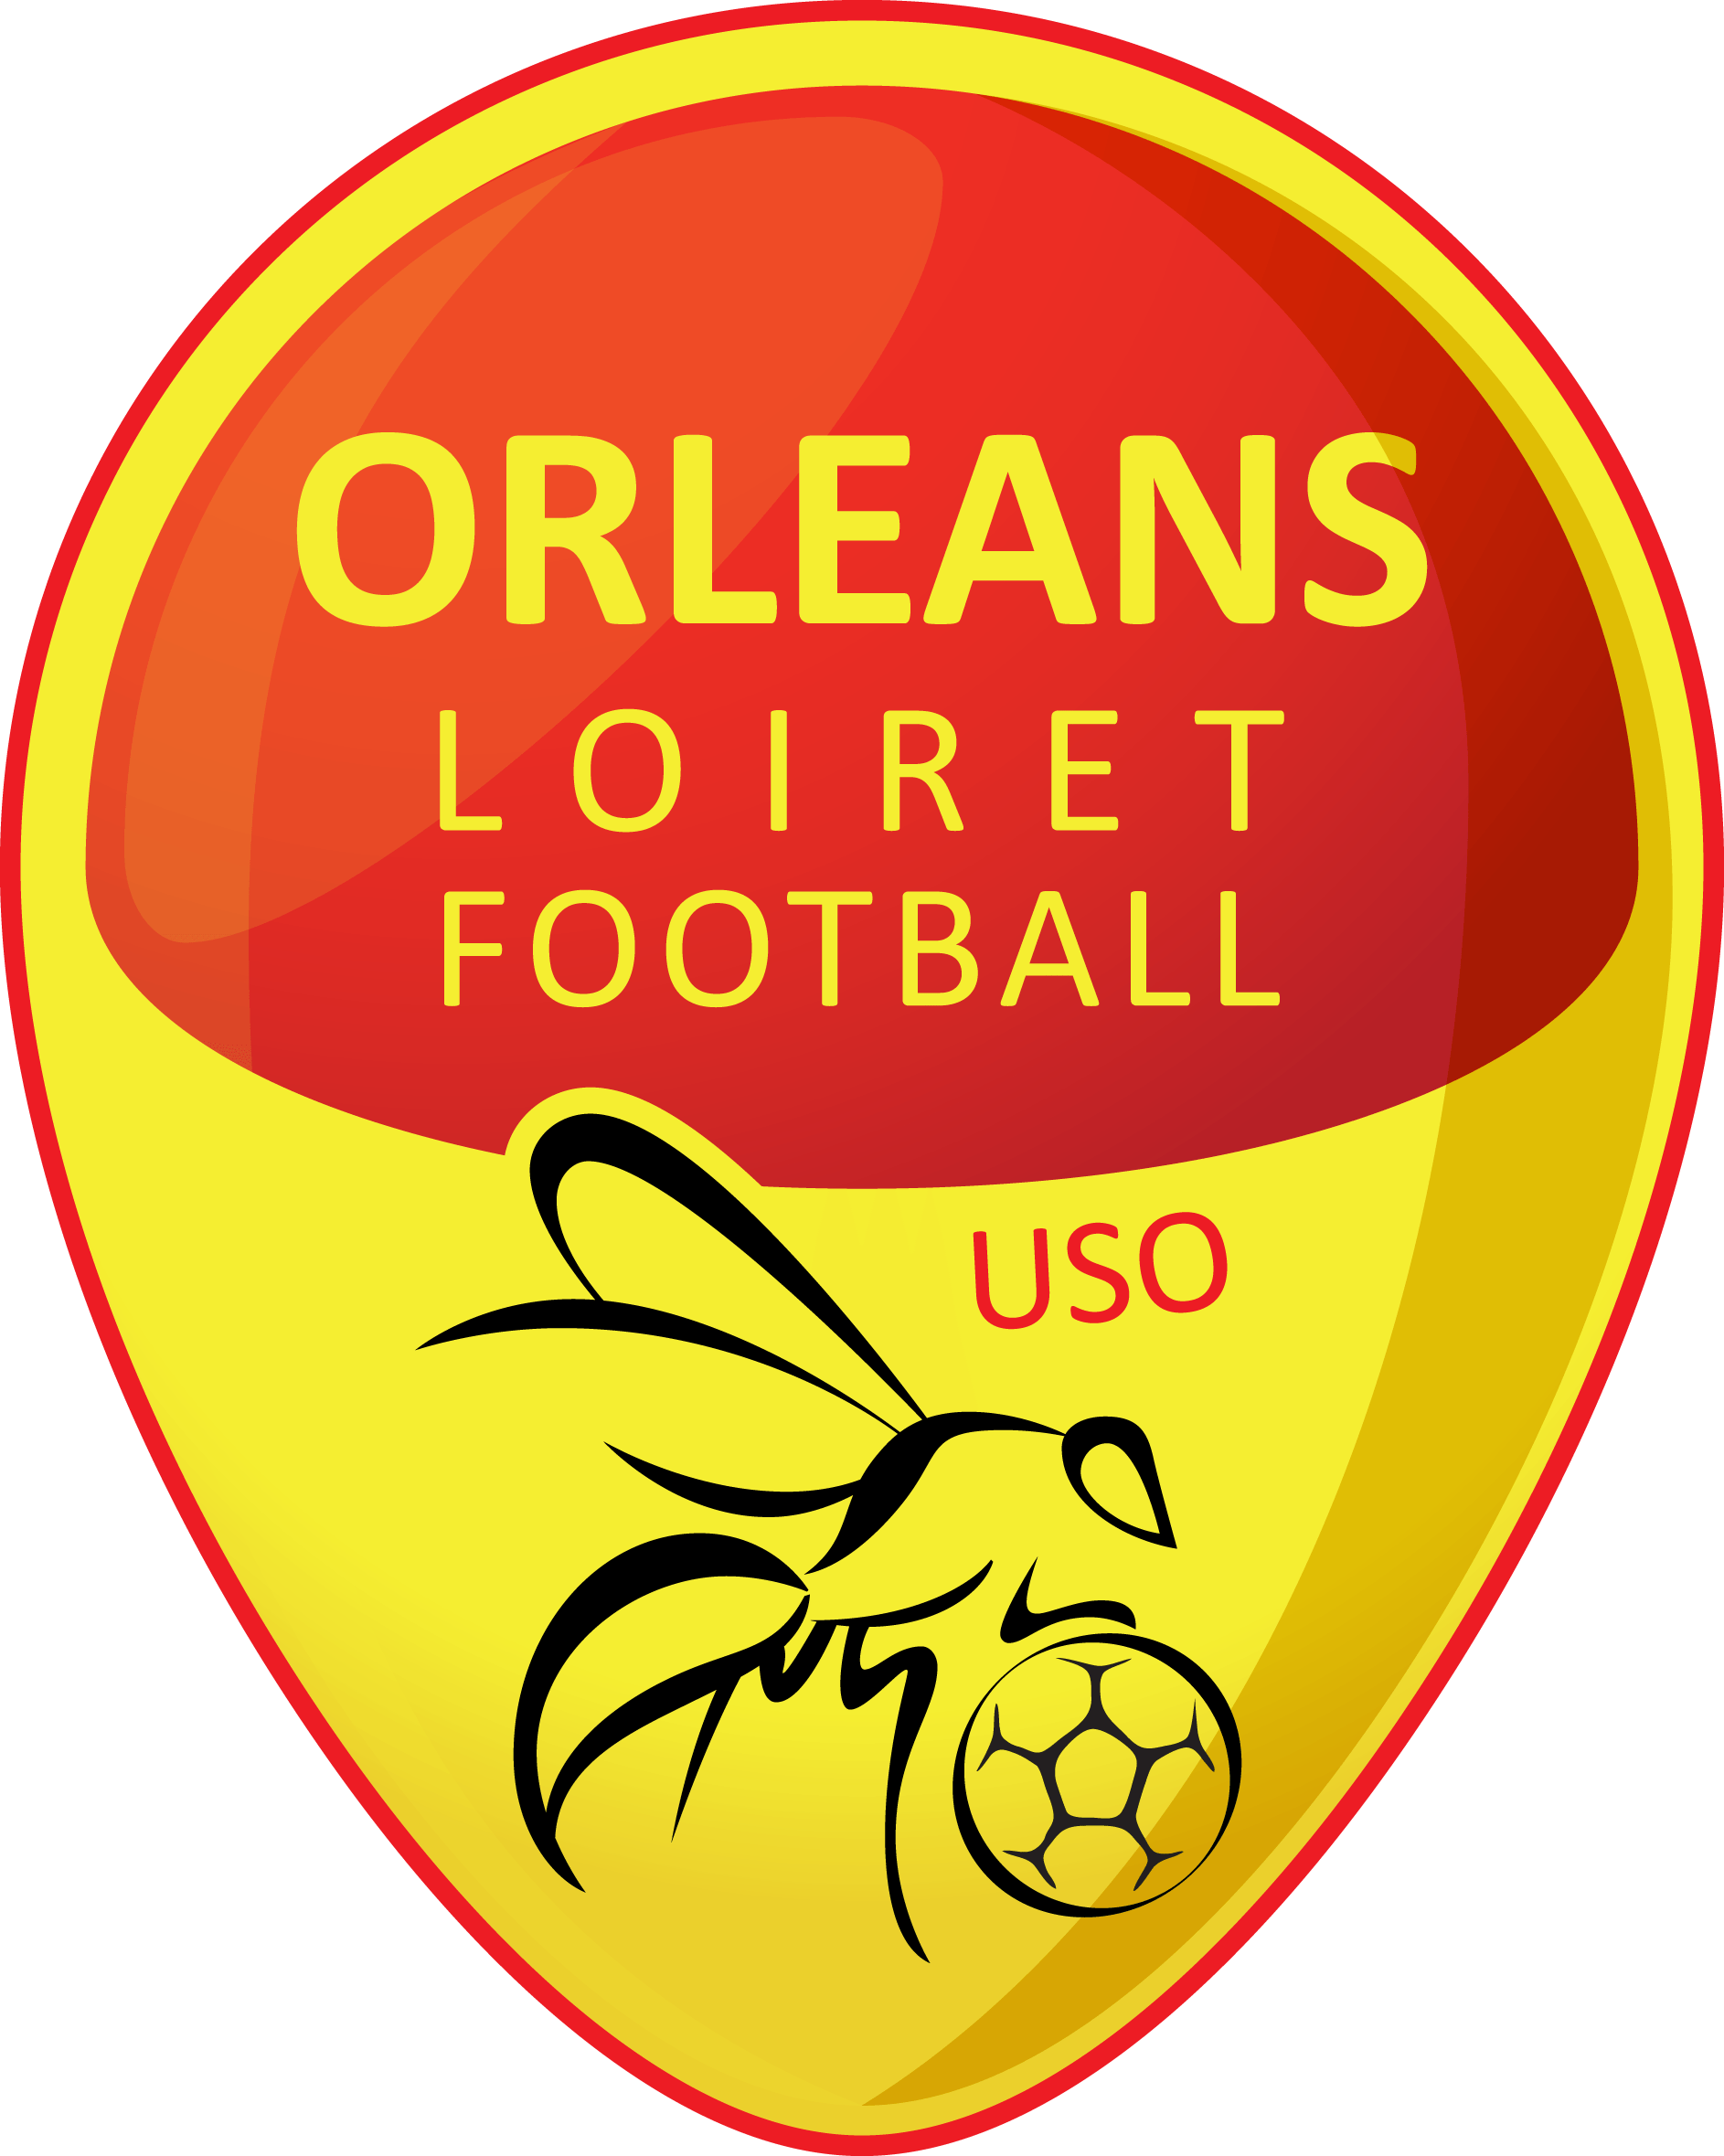 Association et club sportif : US Orléans Loiret Football